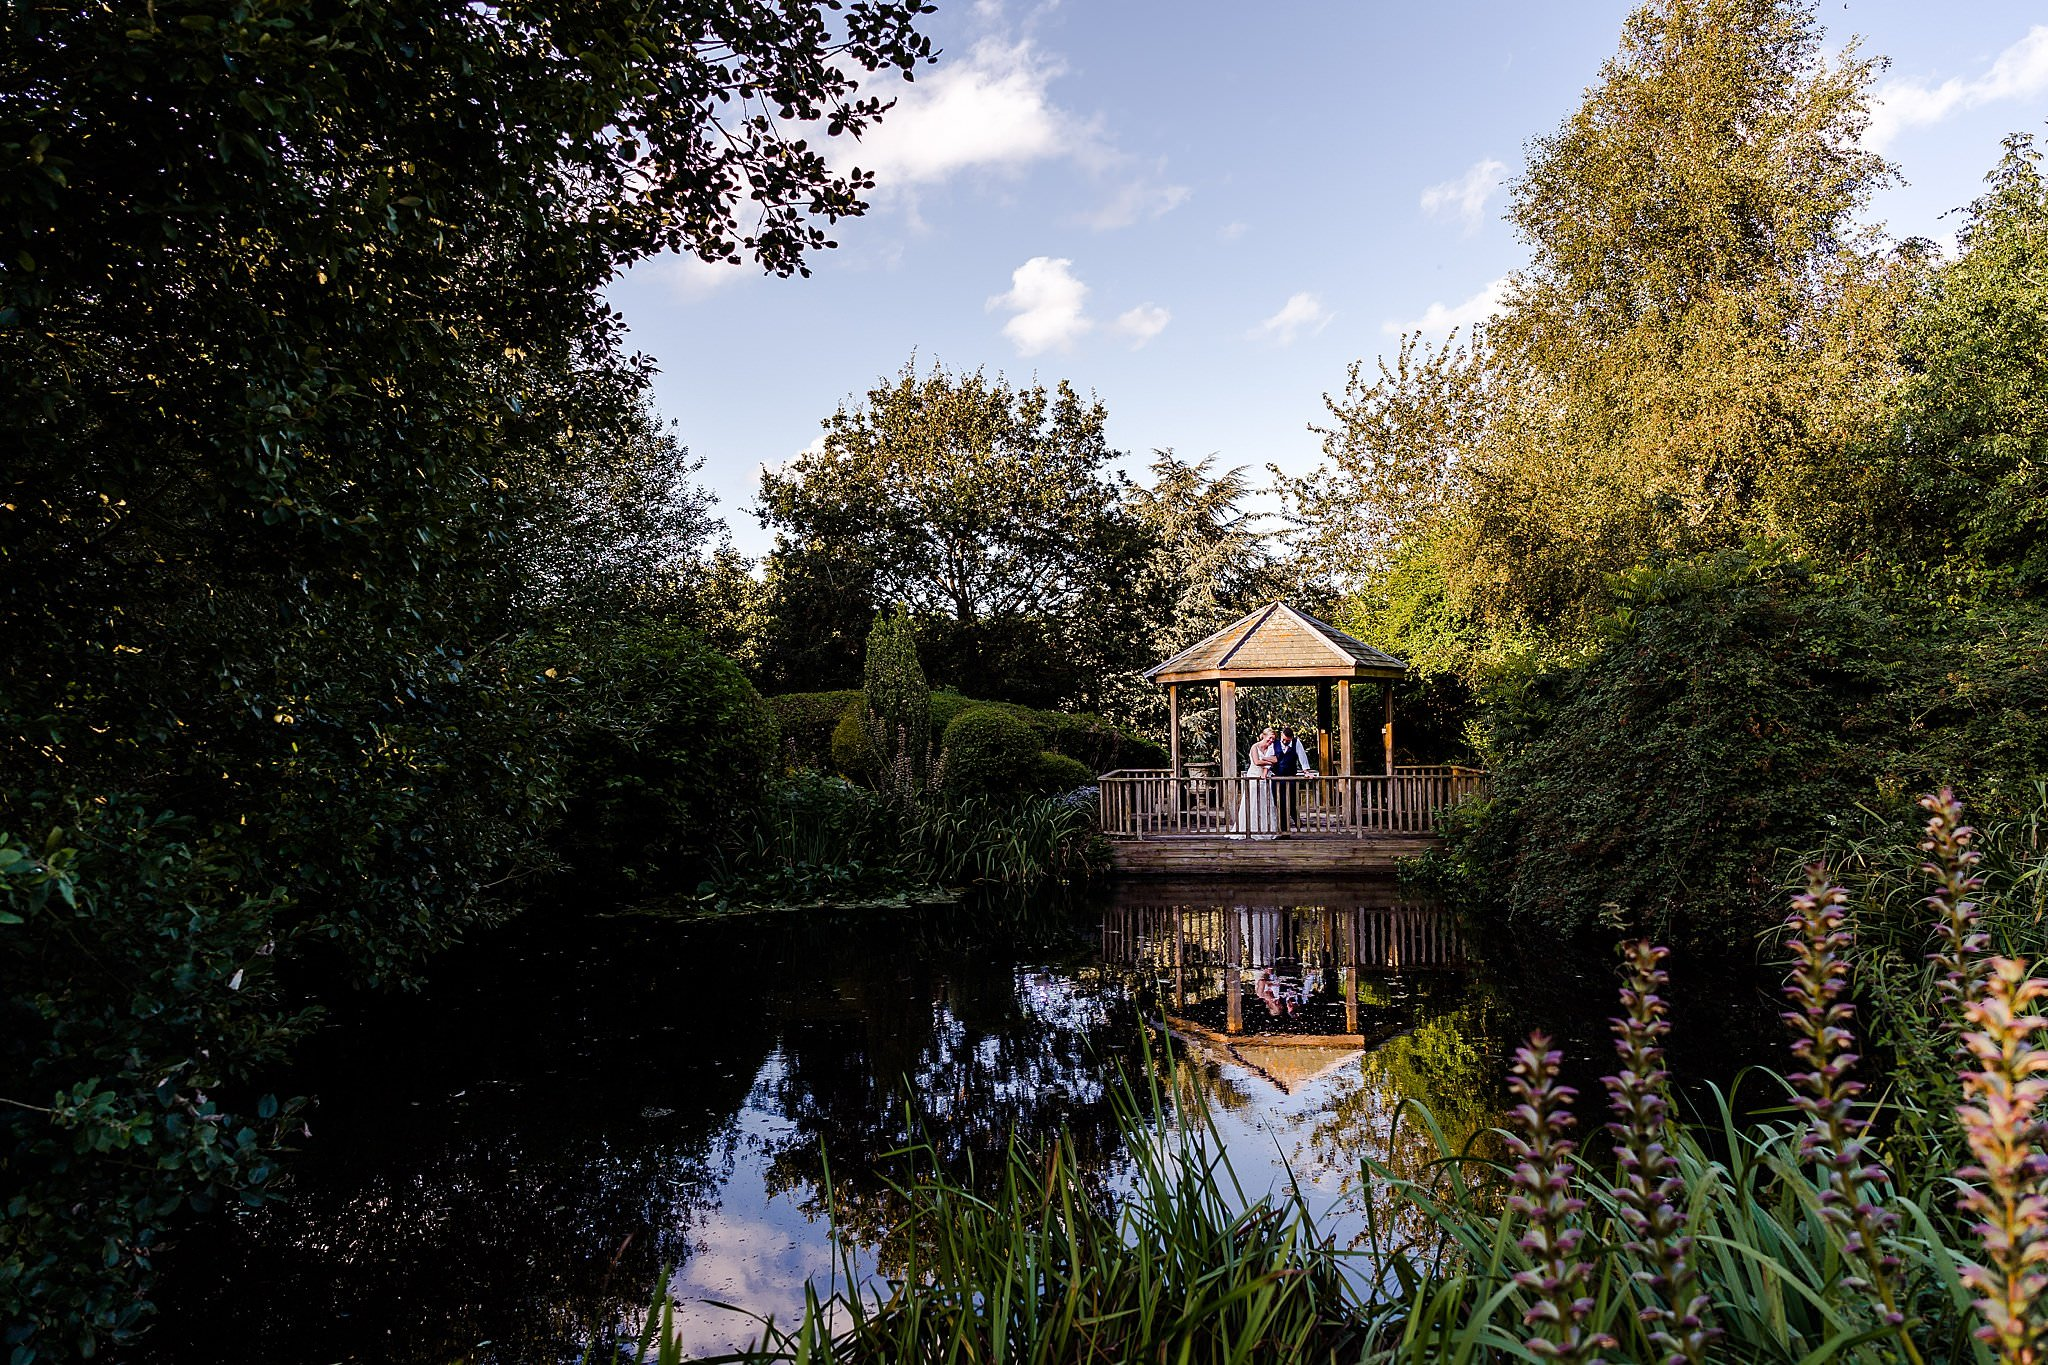 Wide shot showing the bride and groom in the gazebo over the water at Newton House Barns